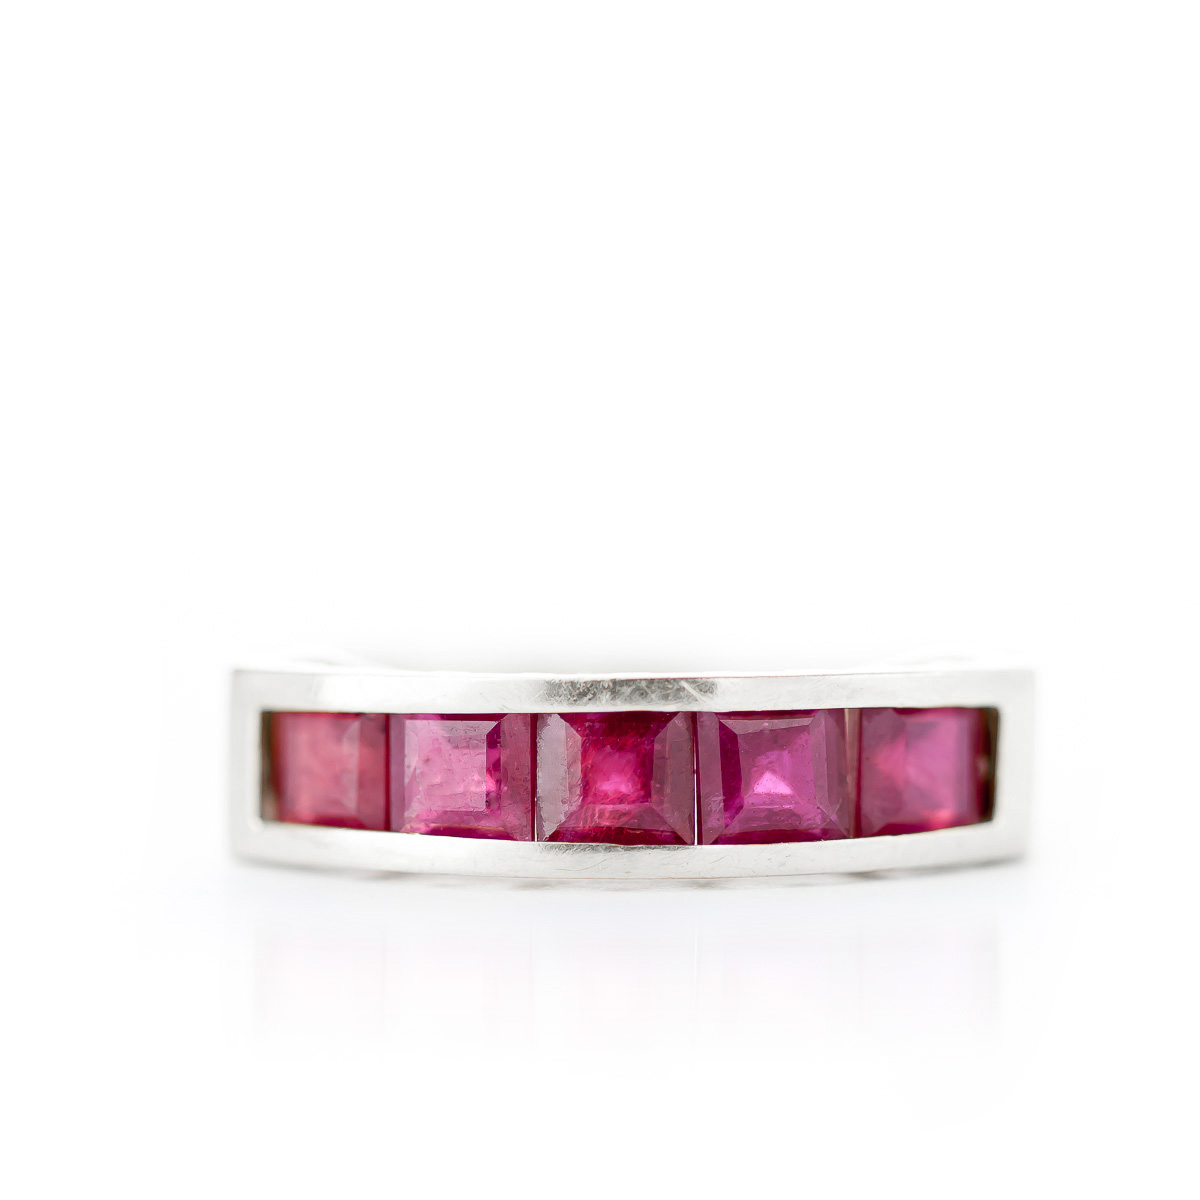 Ruby Prestige Ring 2.5 ctw in 18ct White Gold